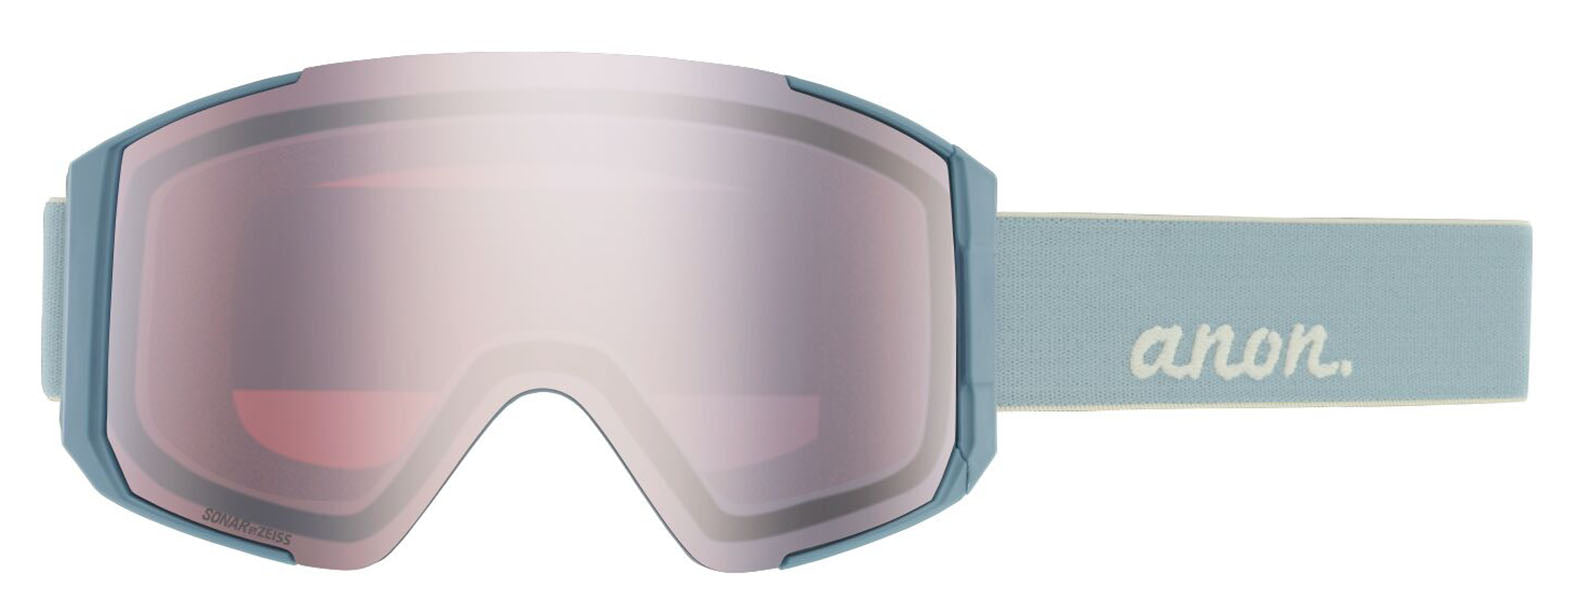 Anon Womens Clutch Goggles